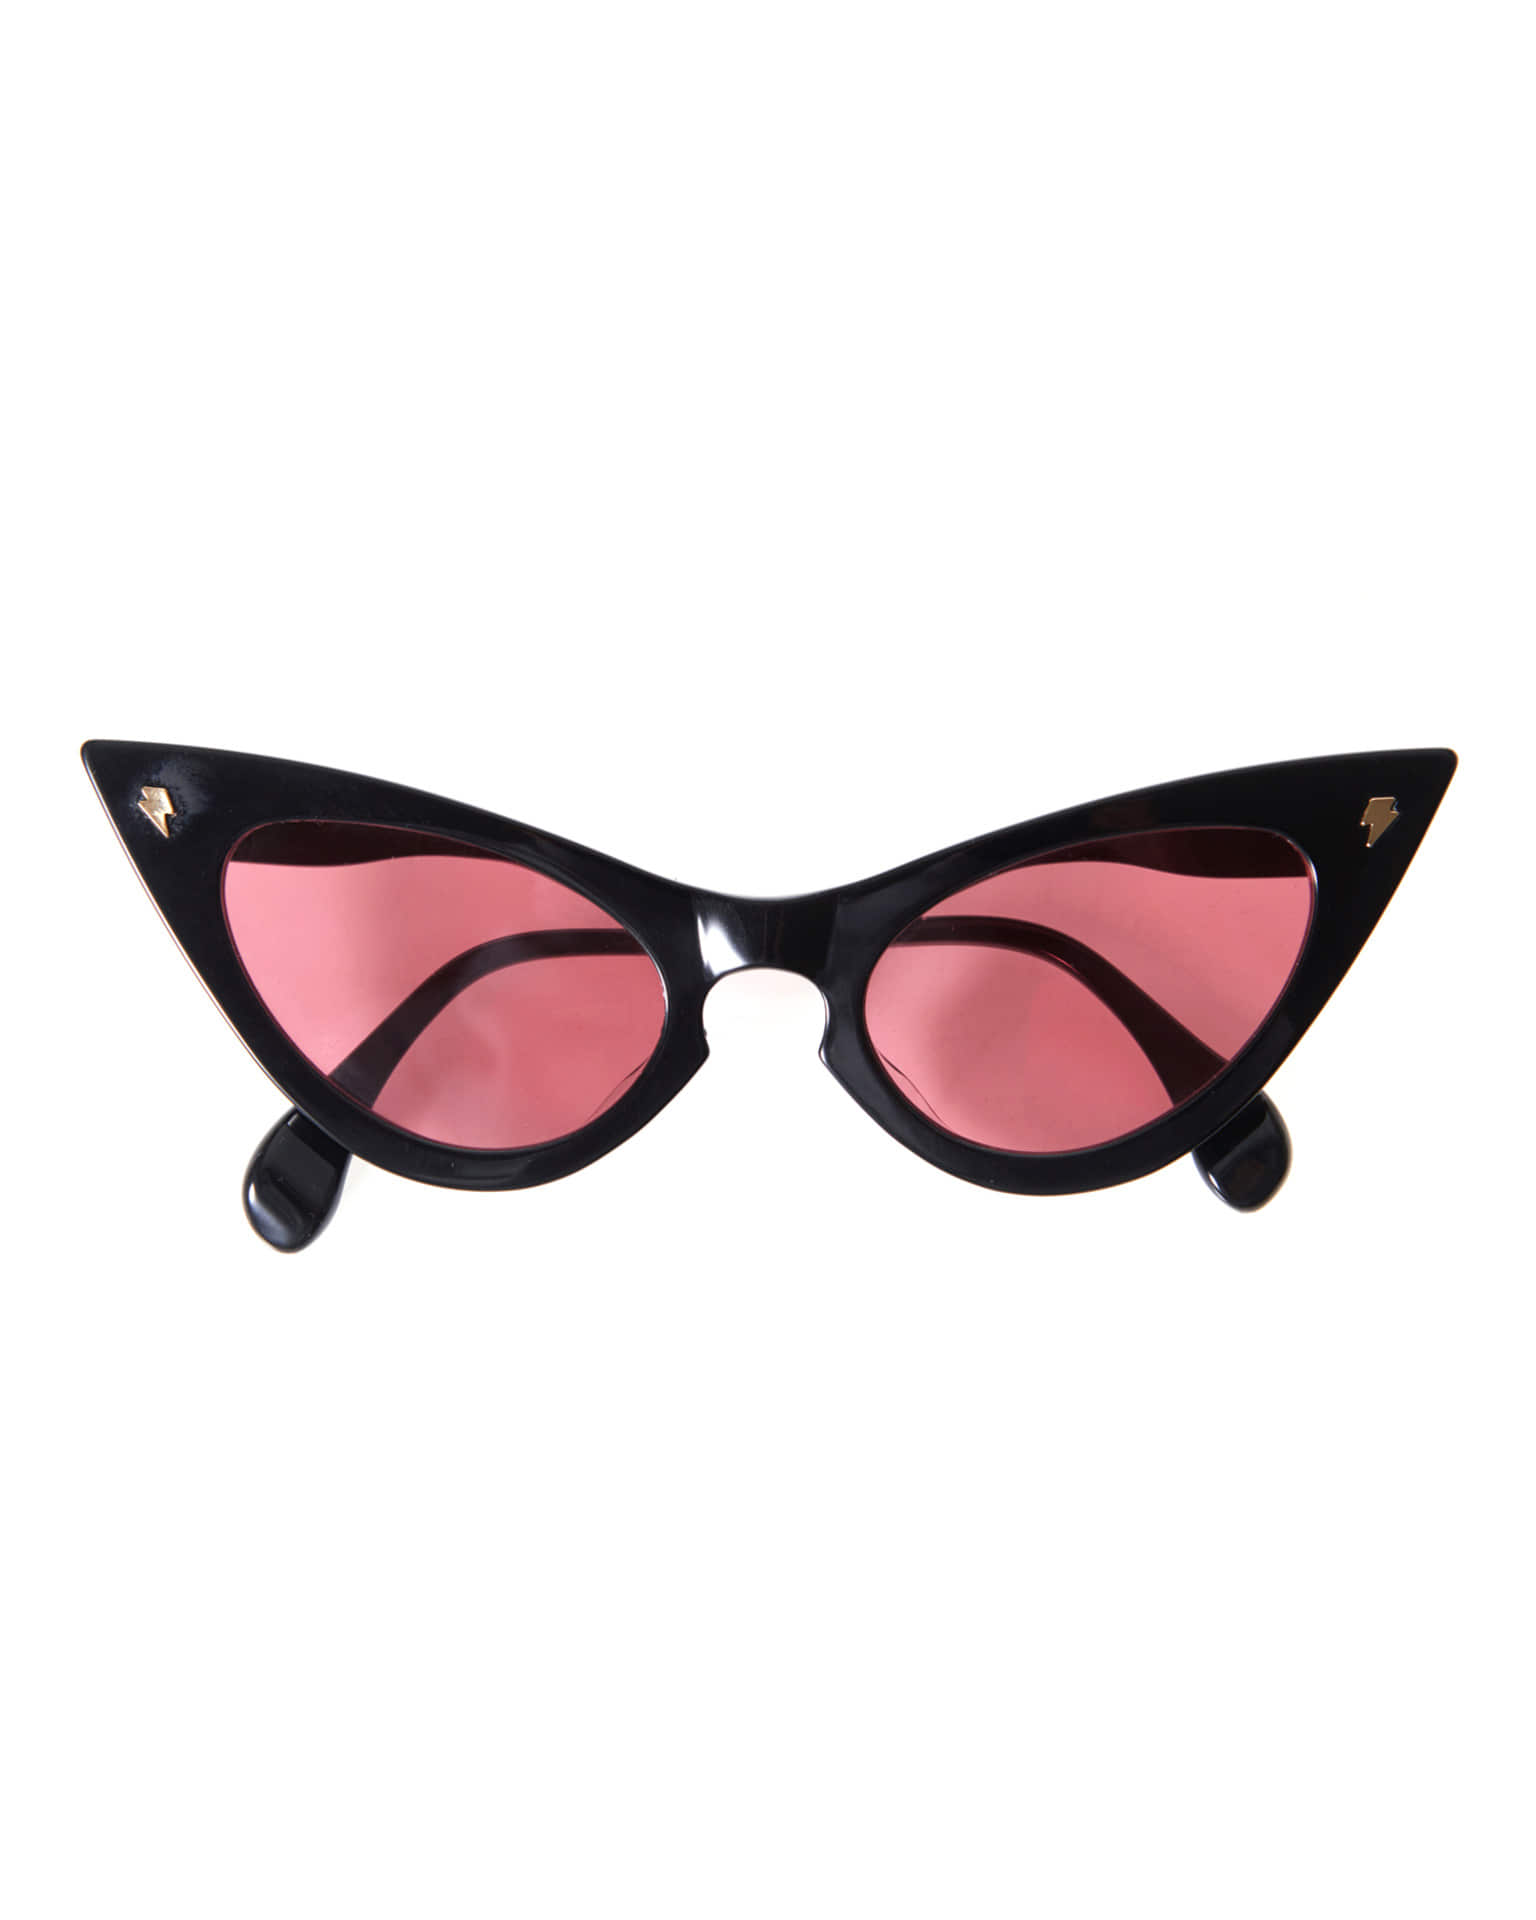 ANGRY EYES SHAPE SUNGLASSES